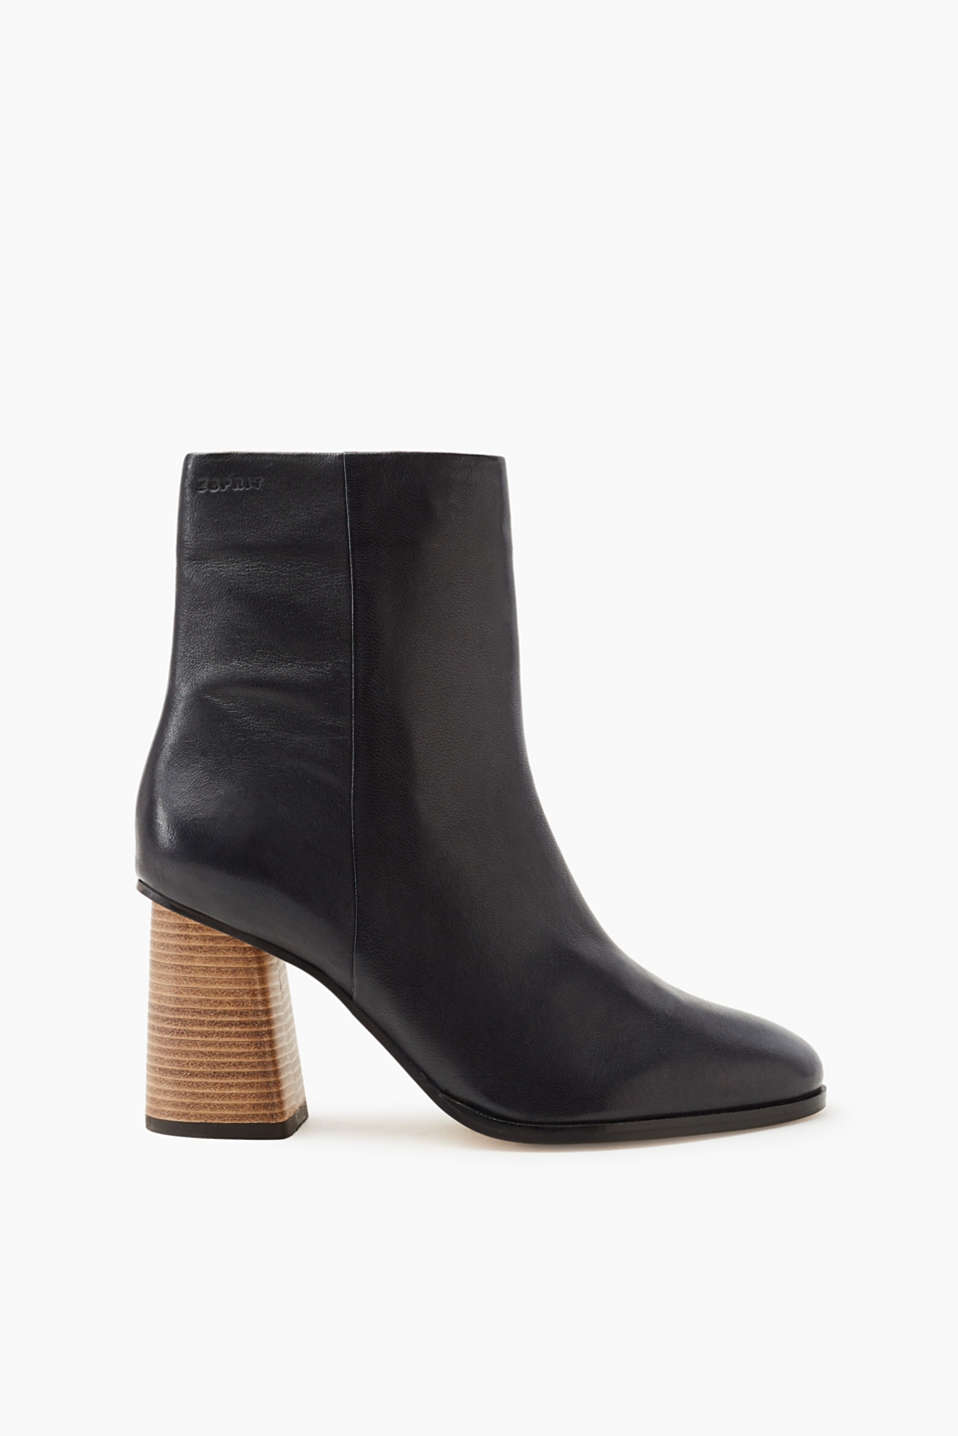 The It piece footwear of the season: boots with geometric block heel in a wood look, made of cowhide